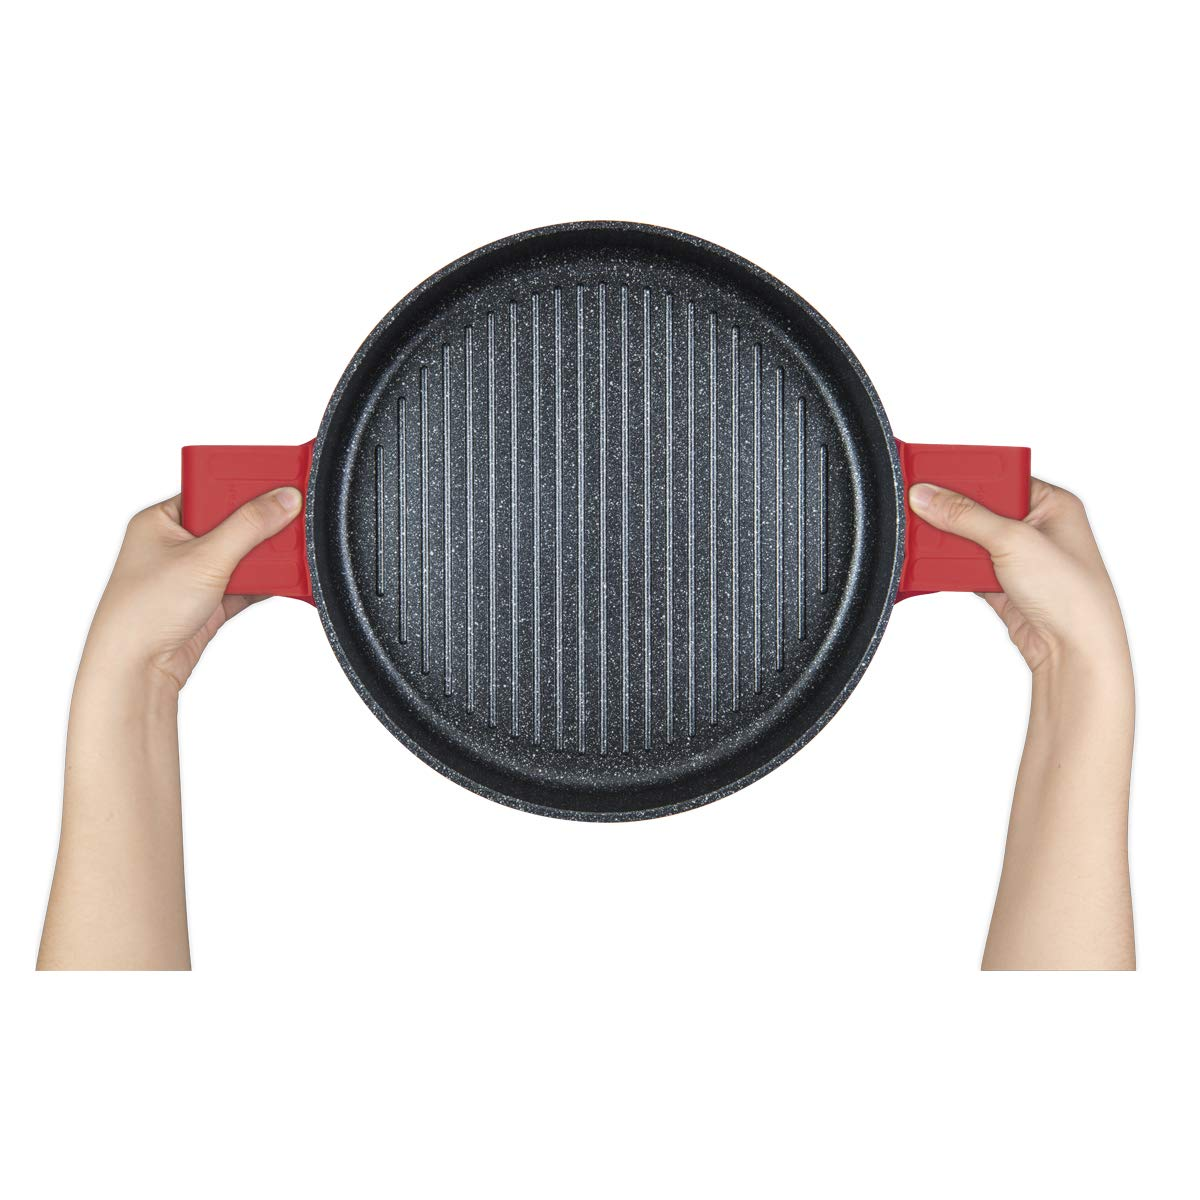 MasterPan Non-Stick Stovetop Oven Grill Pan with Heat-in Steam-Out Lid, nonstick cookware, 12'', Red, MP-106 by Master Pan (Image #6)